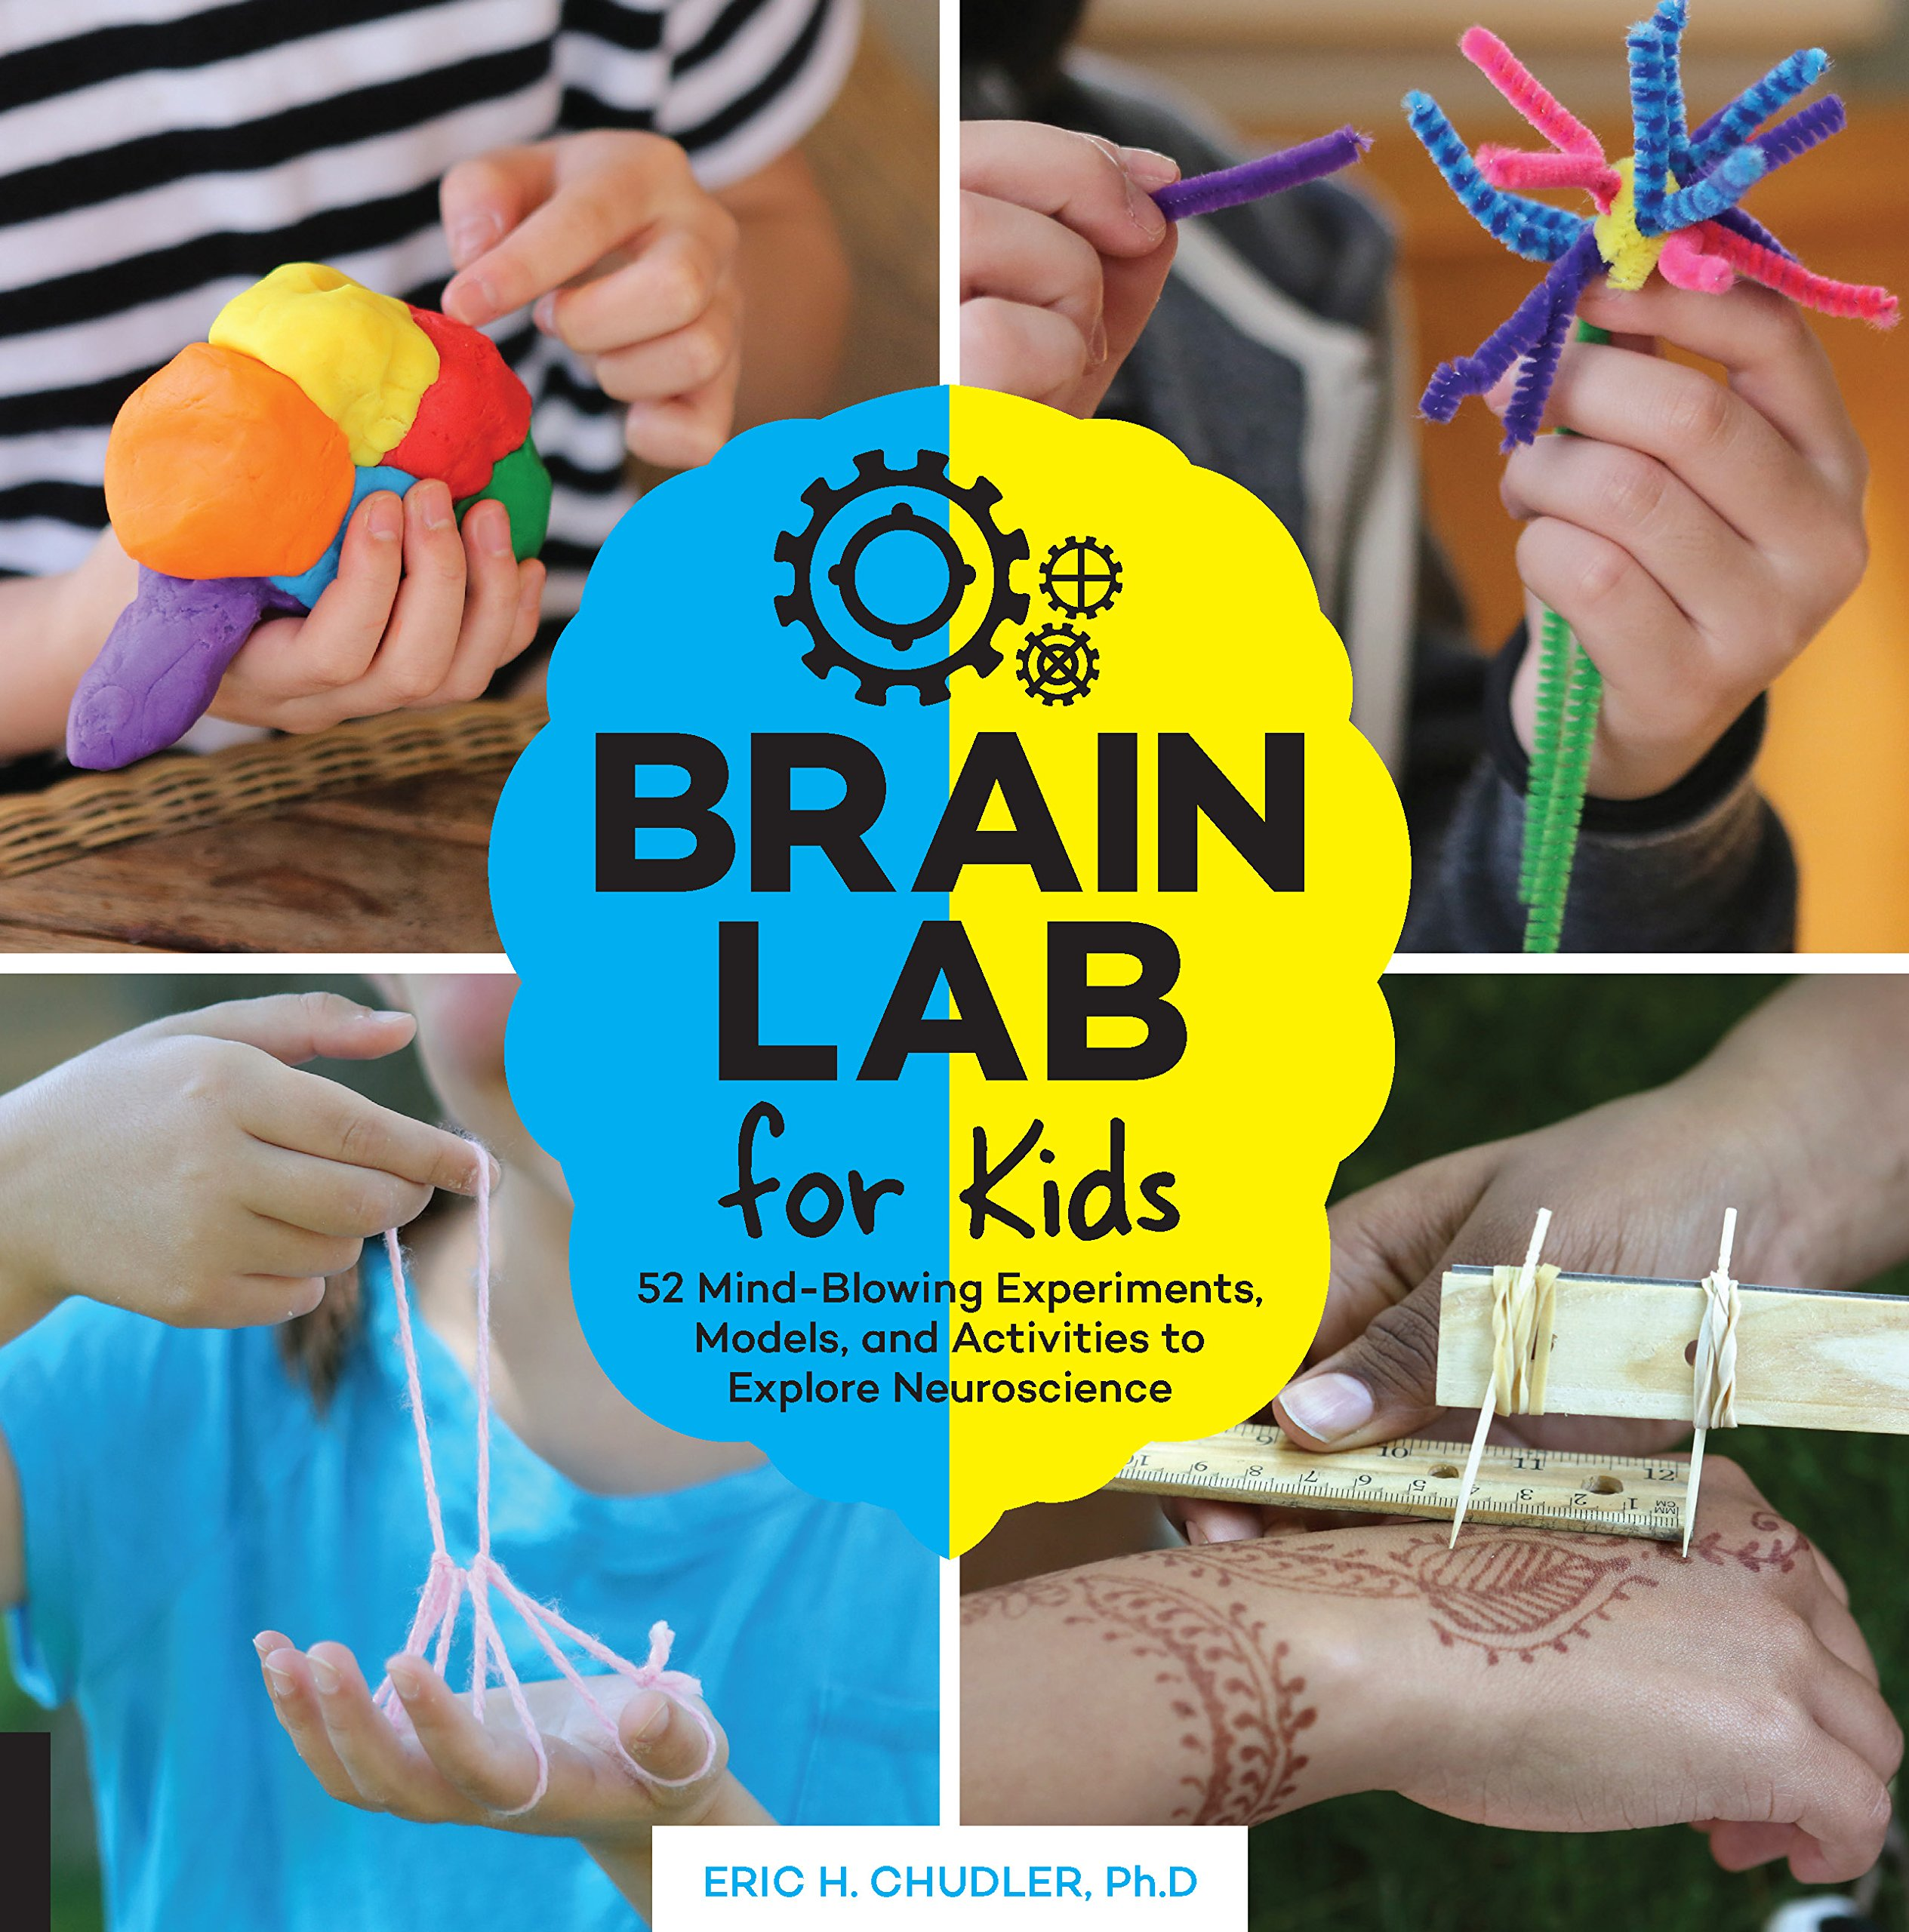 Brain Lab for Kids: 52 Mind-Blowing Experiments, Models, and Activities to Explore Neuroscience (Lab Series)